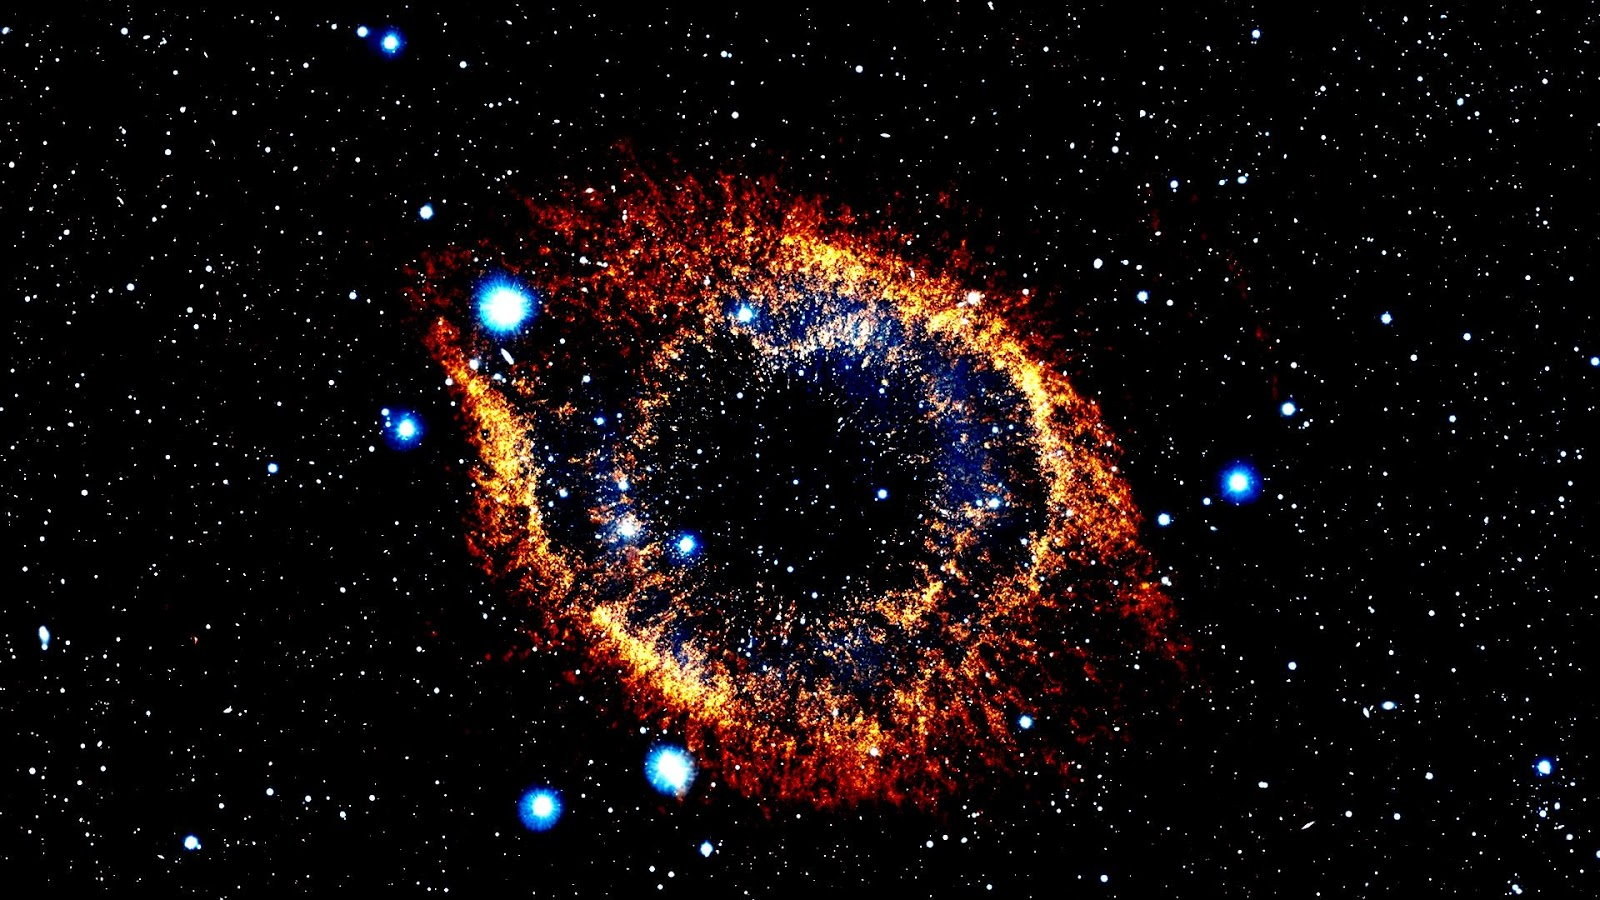 Helix nebula wallpaper - SF Wallpaper